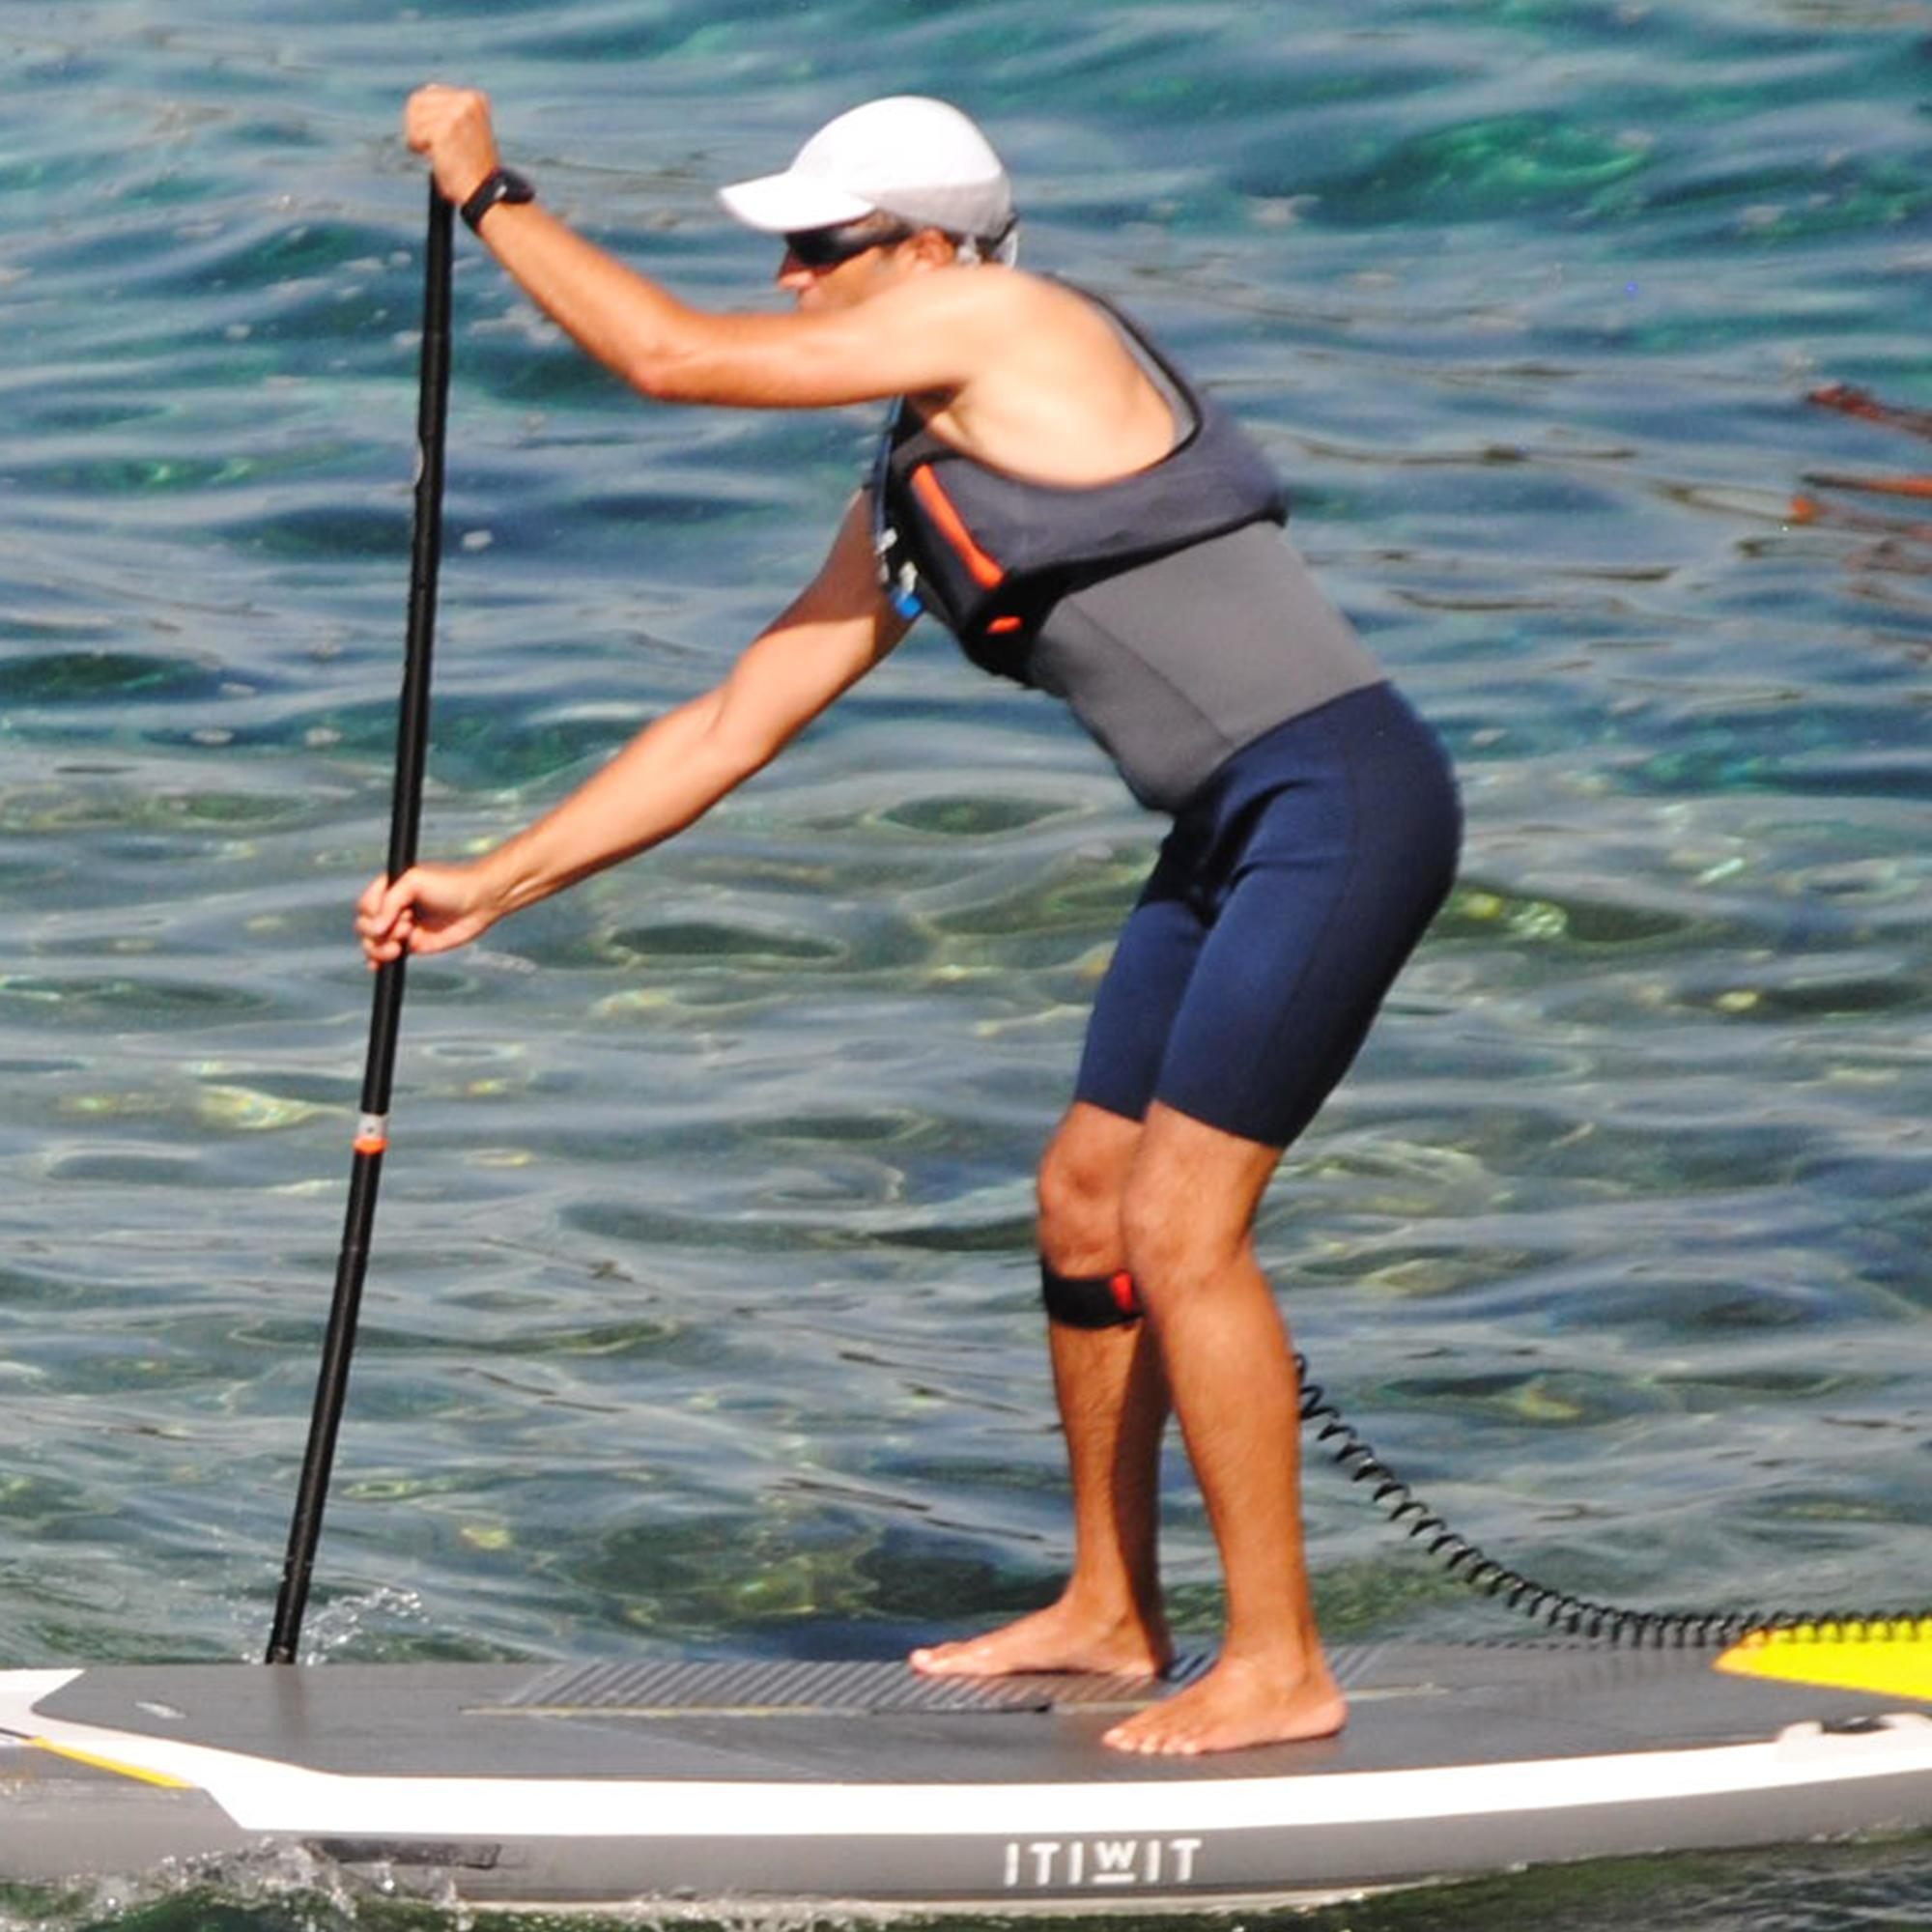 Shorty sin mangas kayak stand up paddle neopreno hombre gris azul jpg  700x700 Neopreno paddle 25c2342a83e